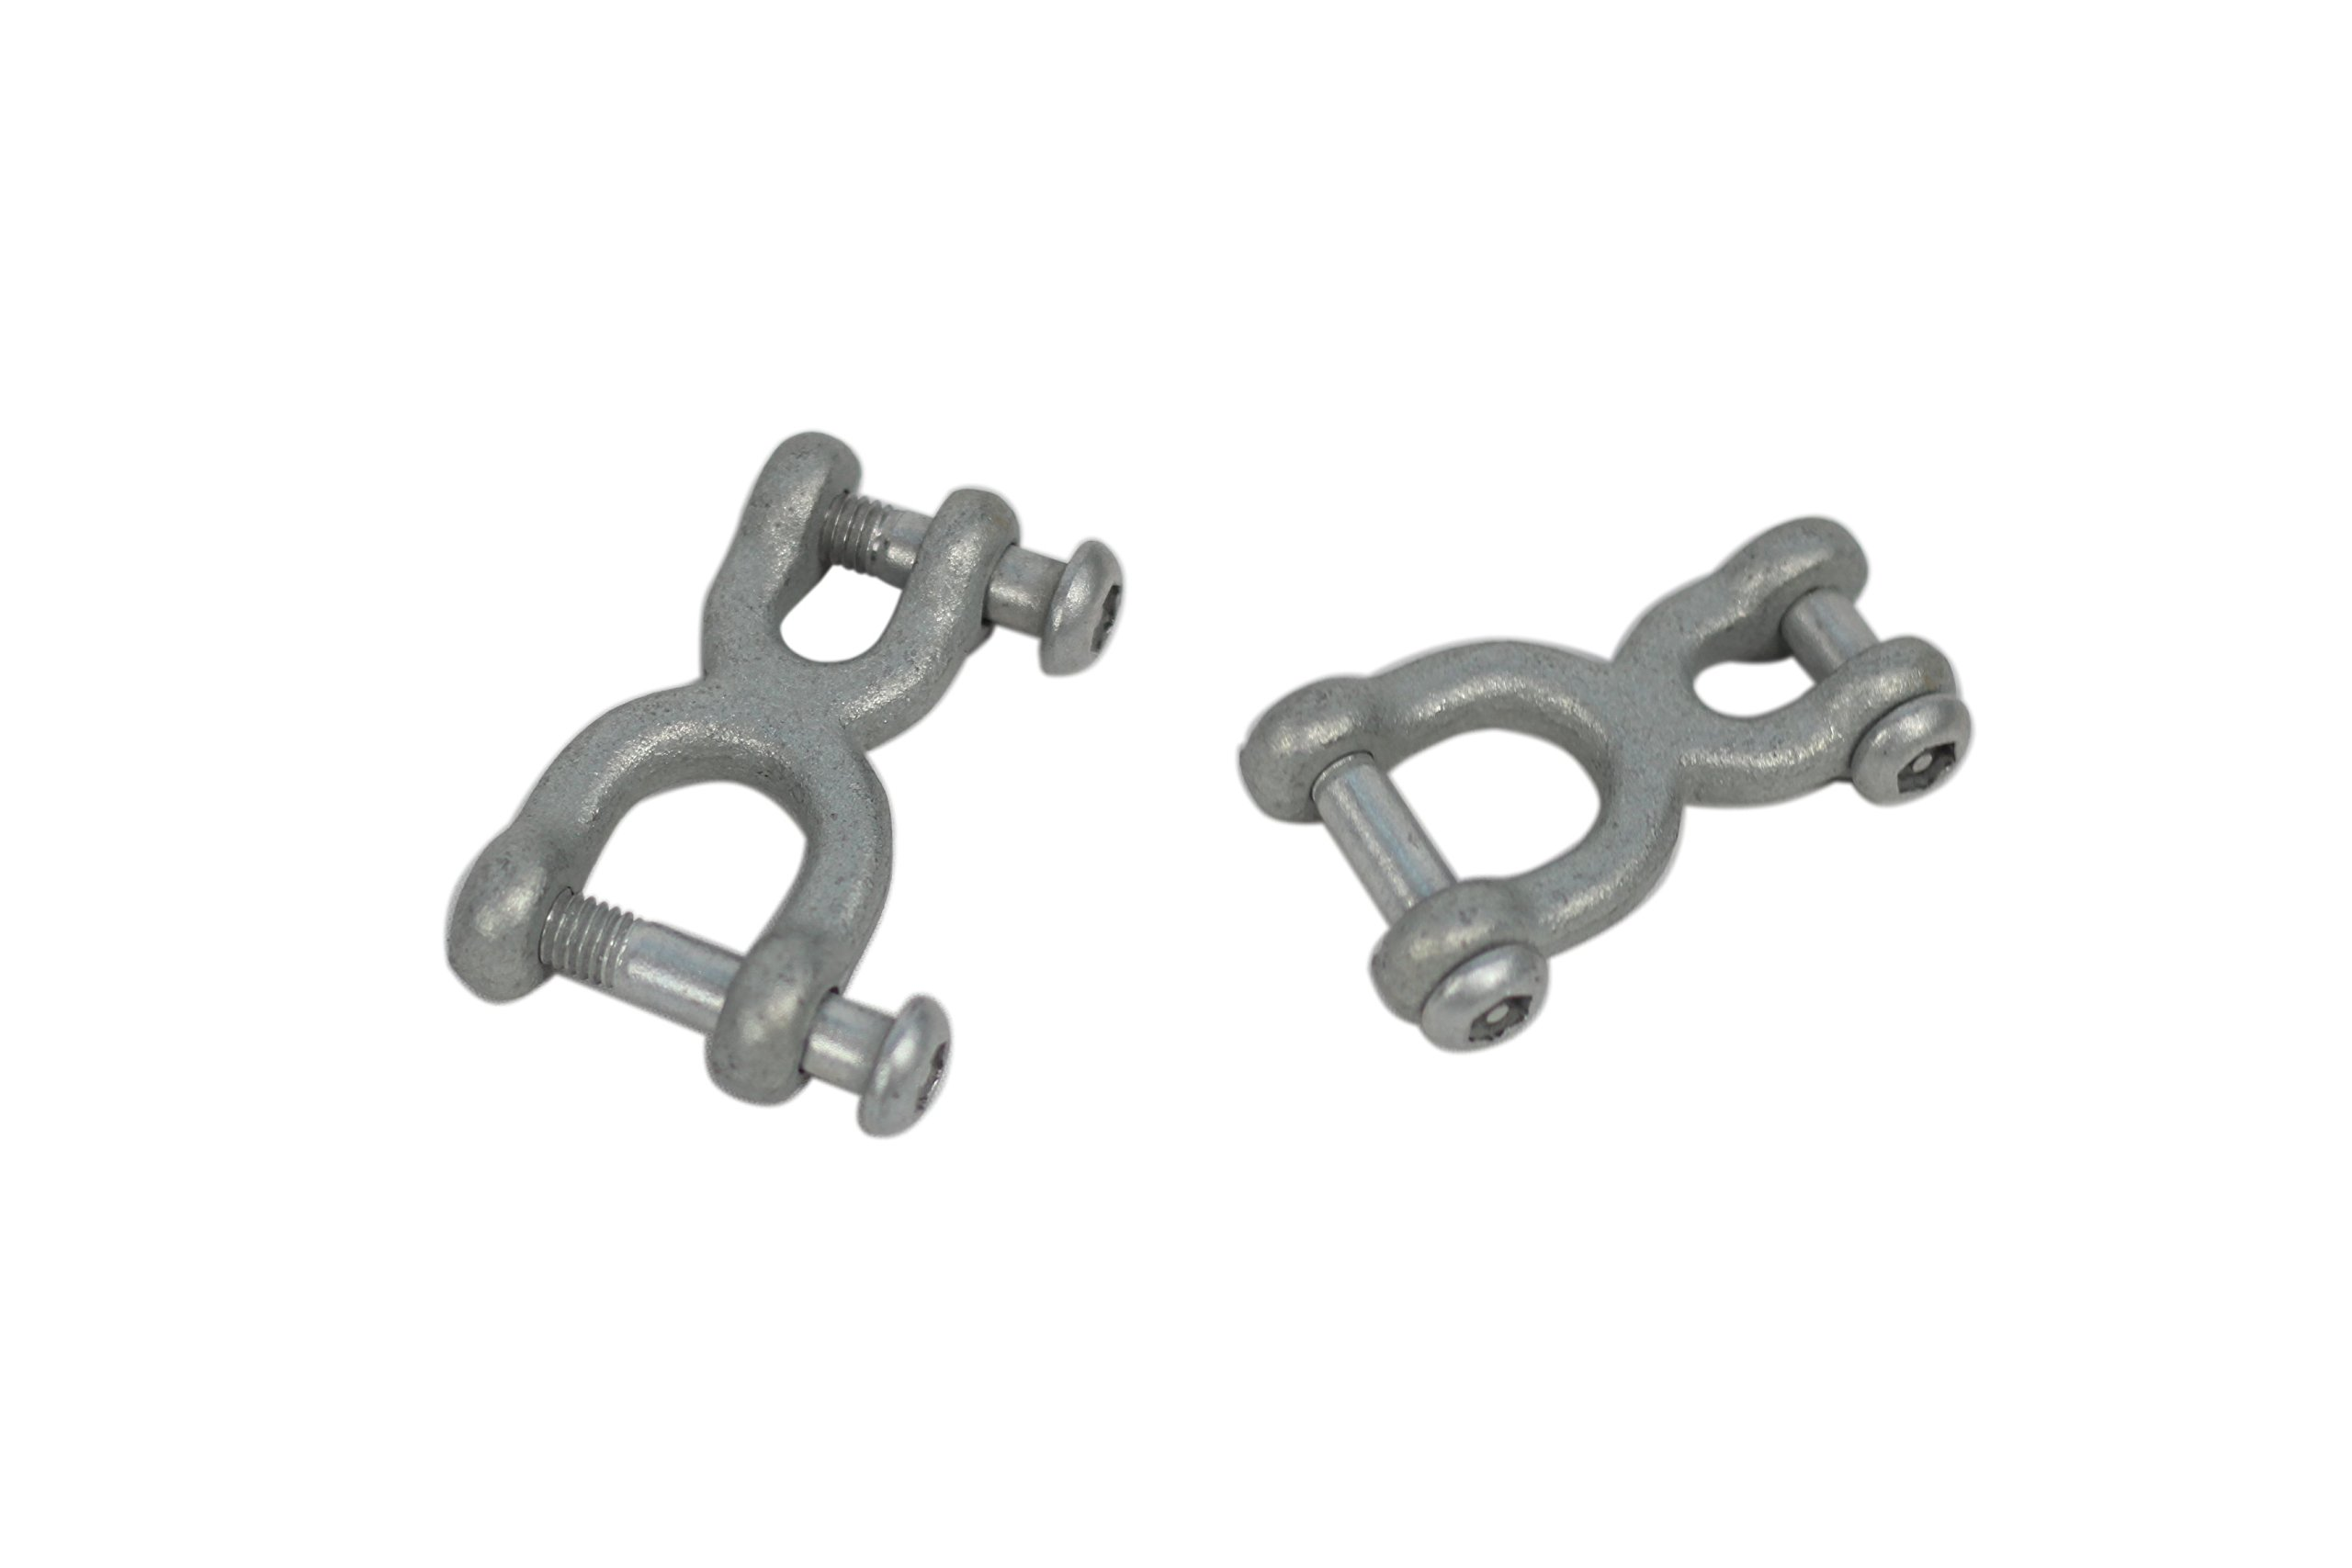 American Swing H-shackle With Special Head - Set of 2